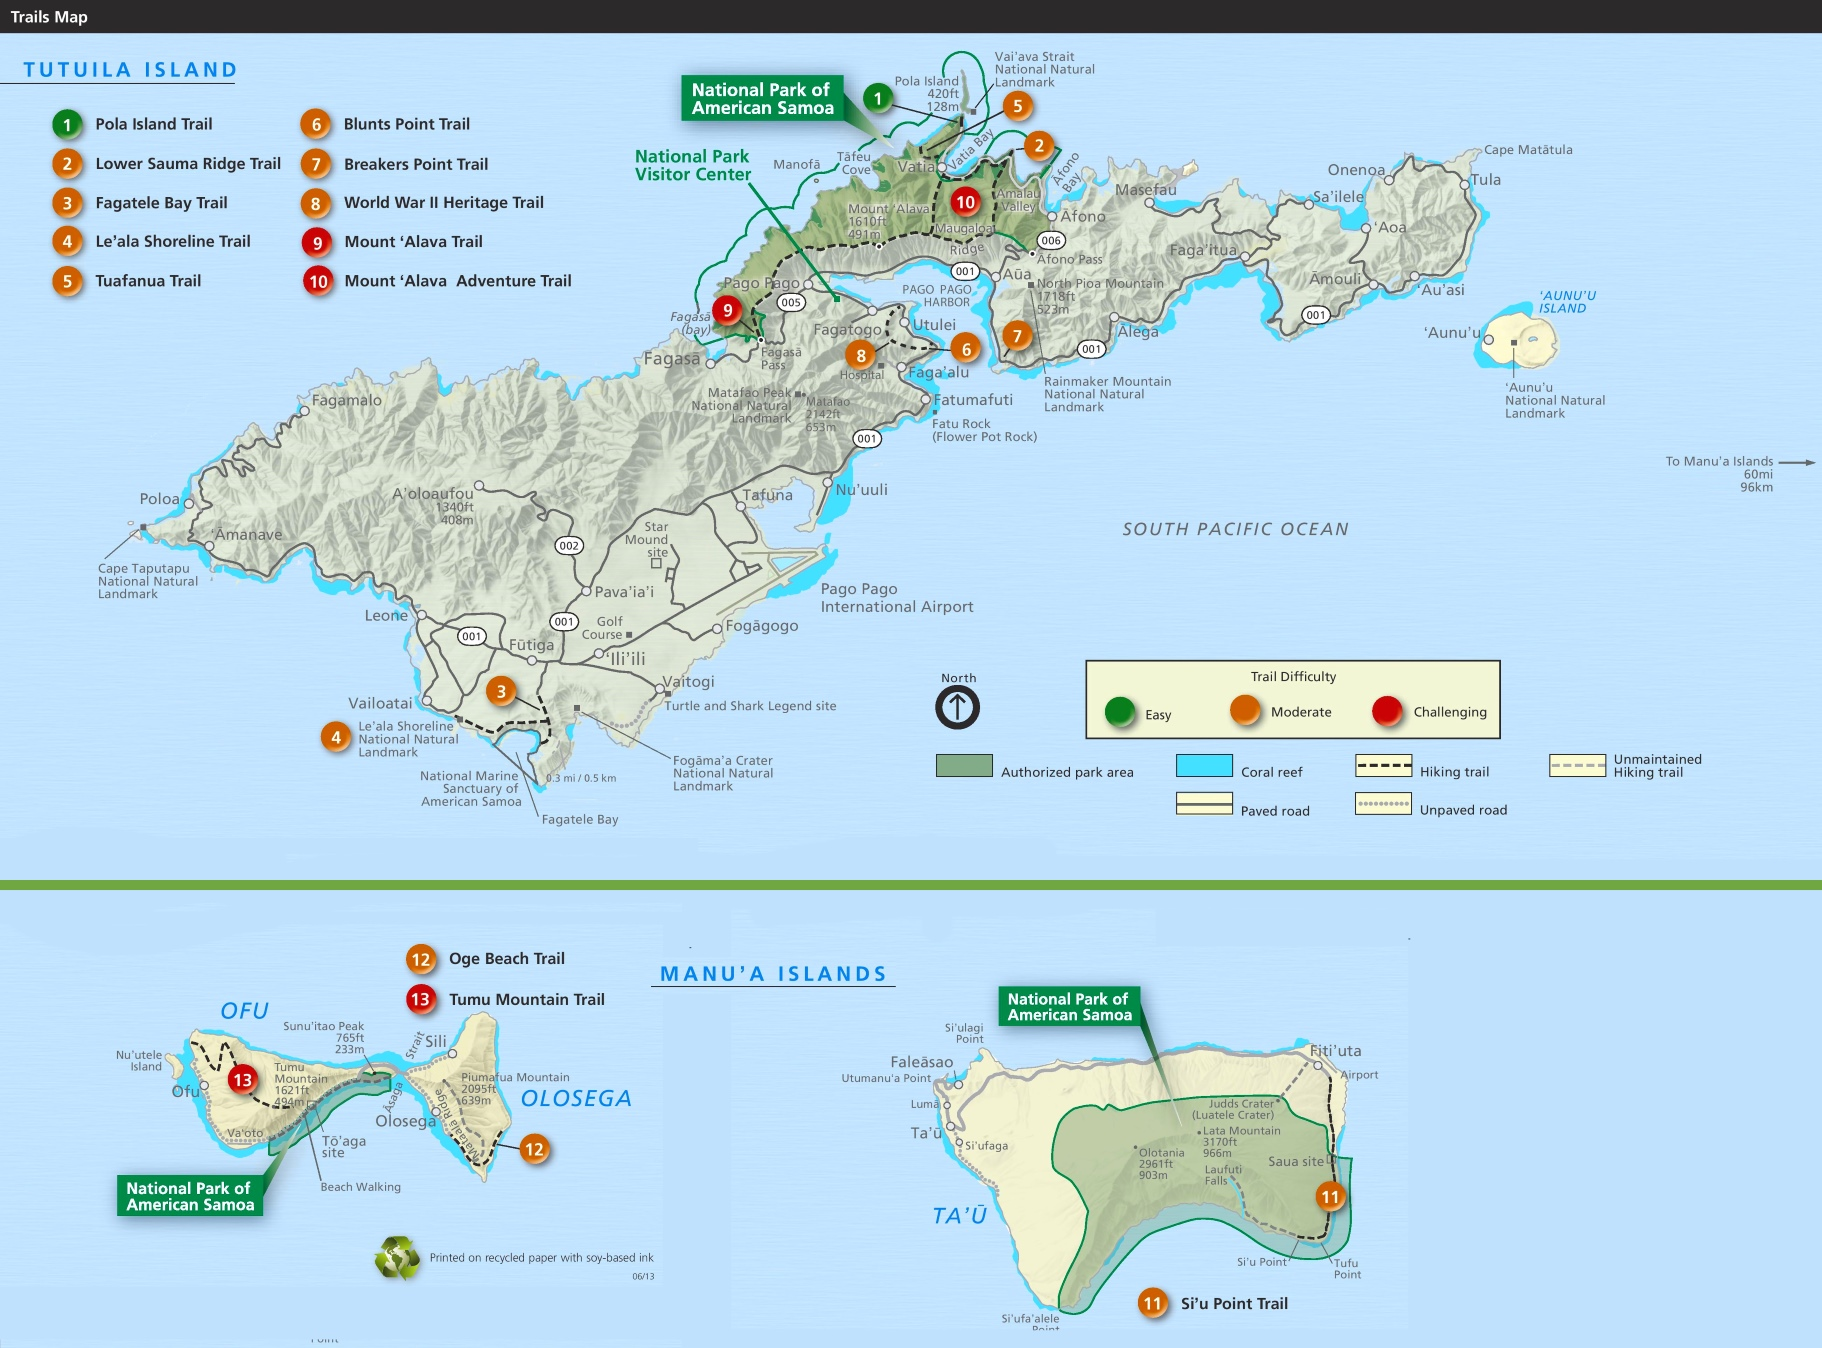 National Park of American Samoa trail map